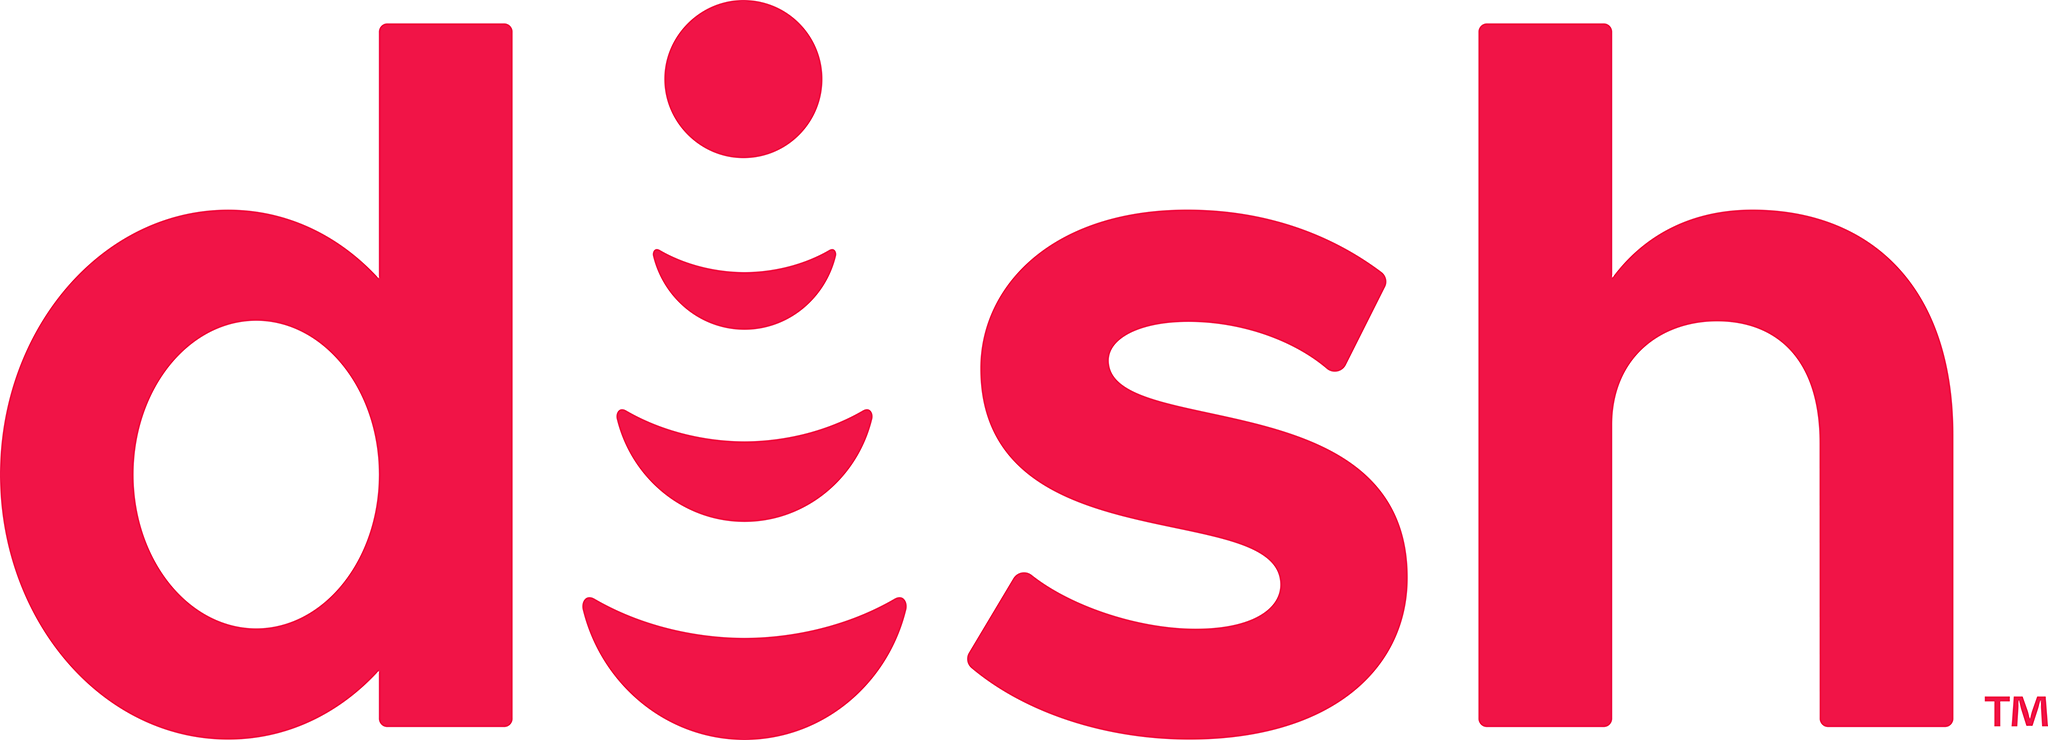 Dish updated logo